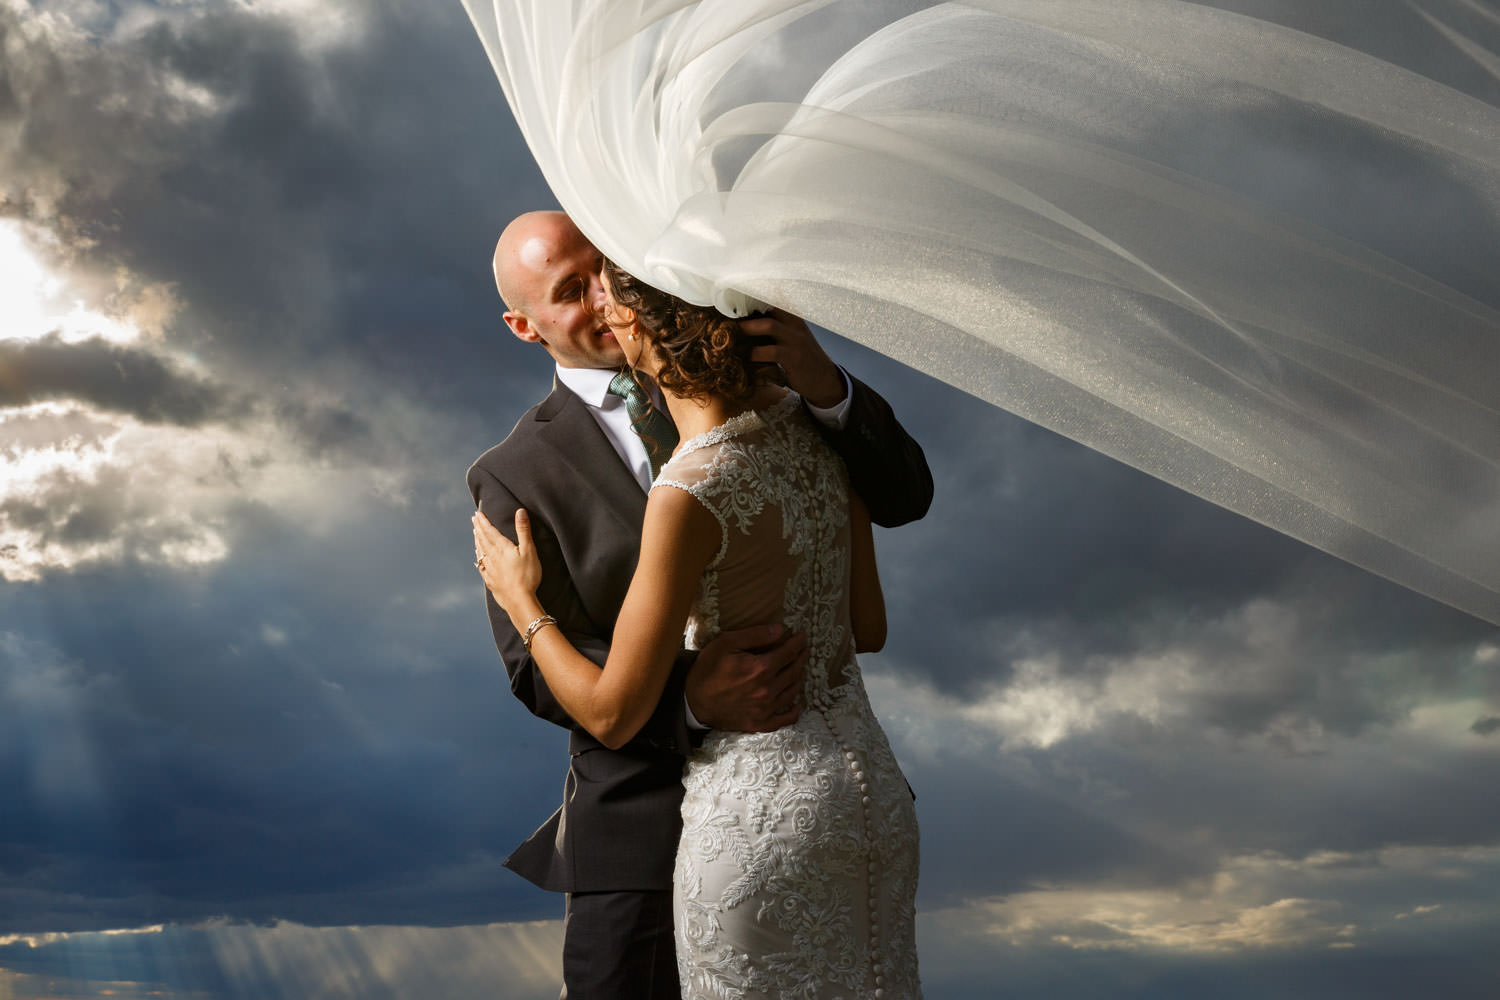 Bride and Groom with brides veil blowing in the wind with ominous sky behind them